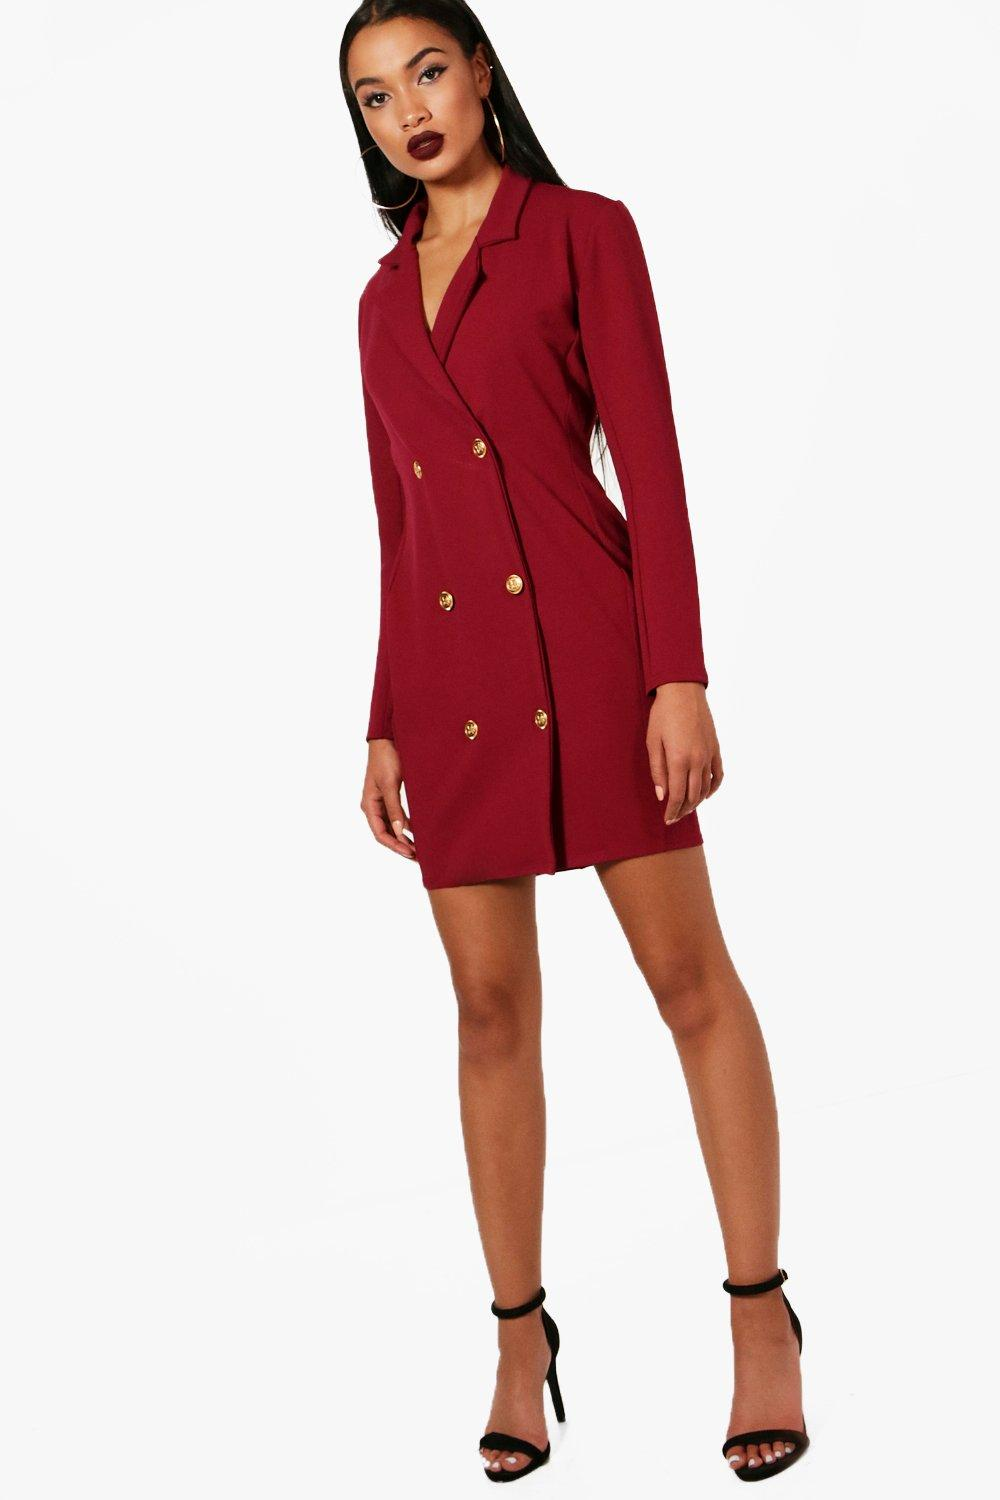 67fc1a283d5c Womens Berry Georgia Double Breasted Blazer Dress. Hover to zoom